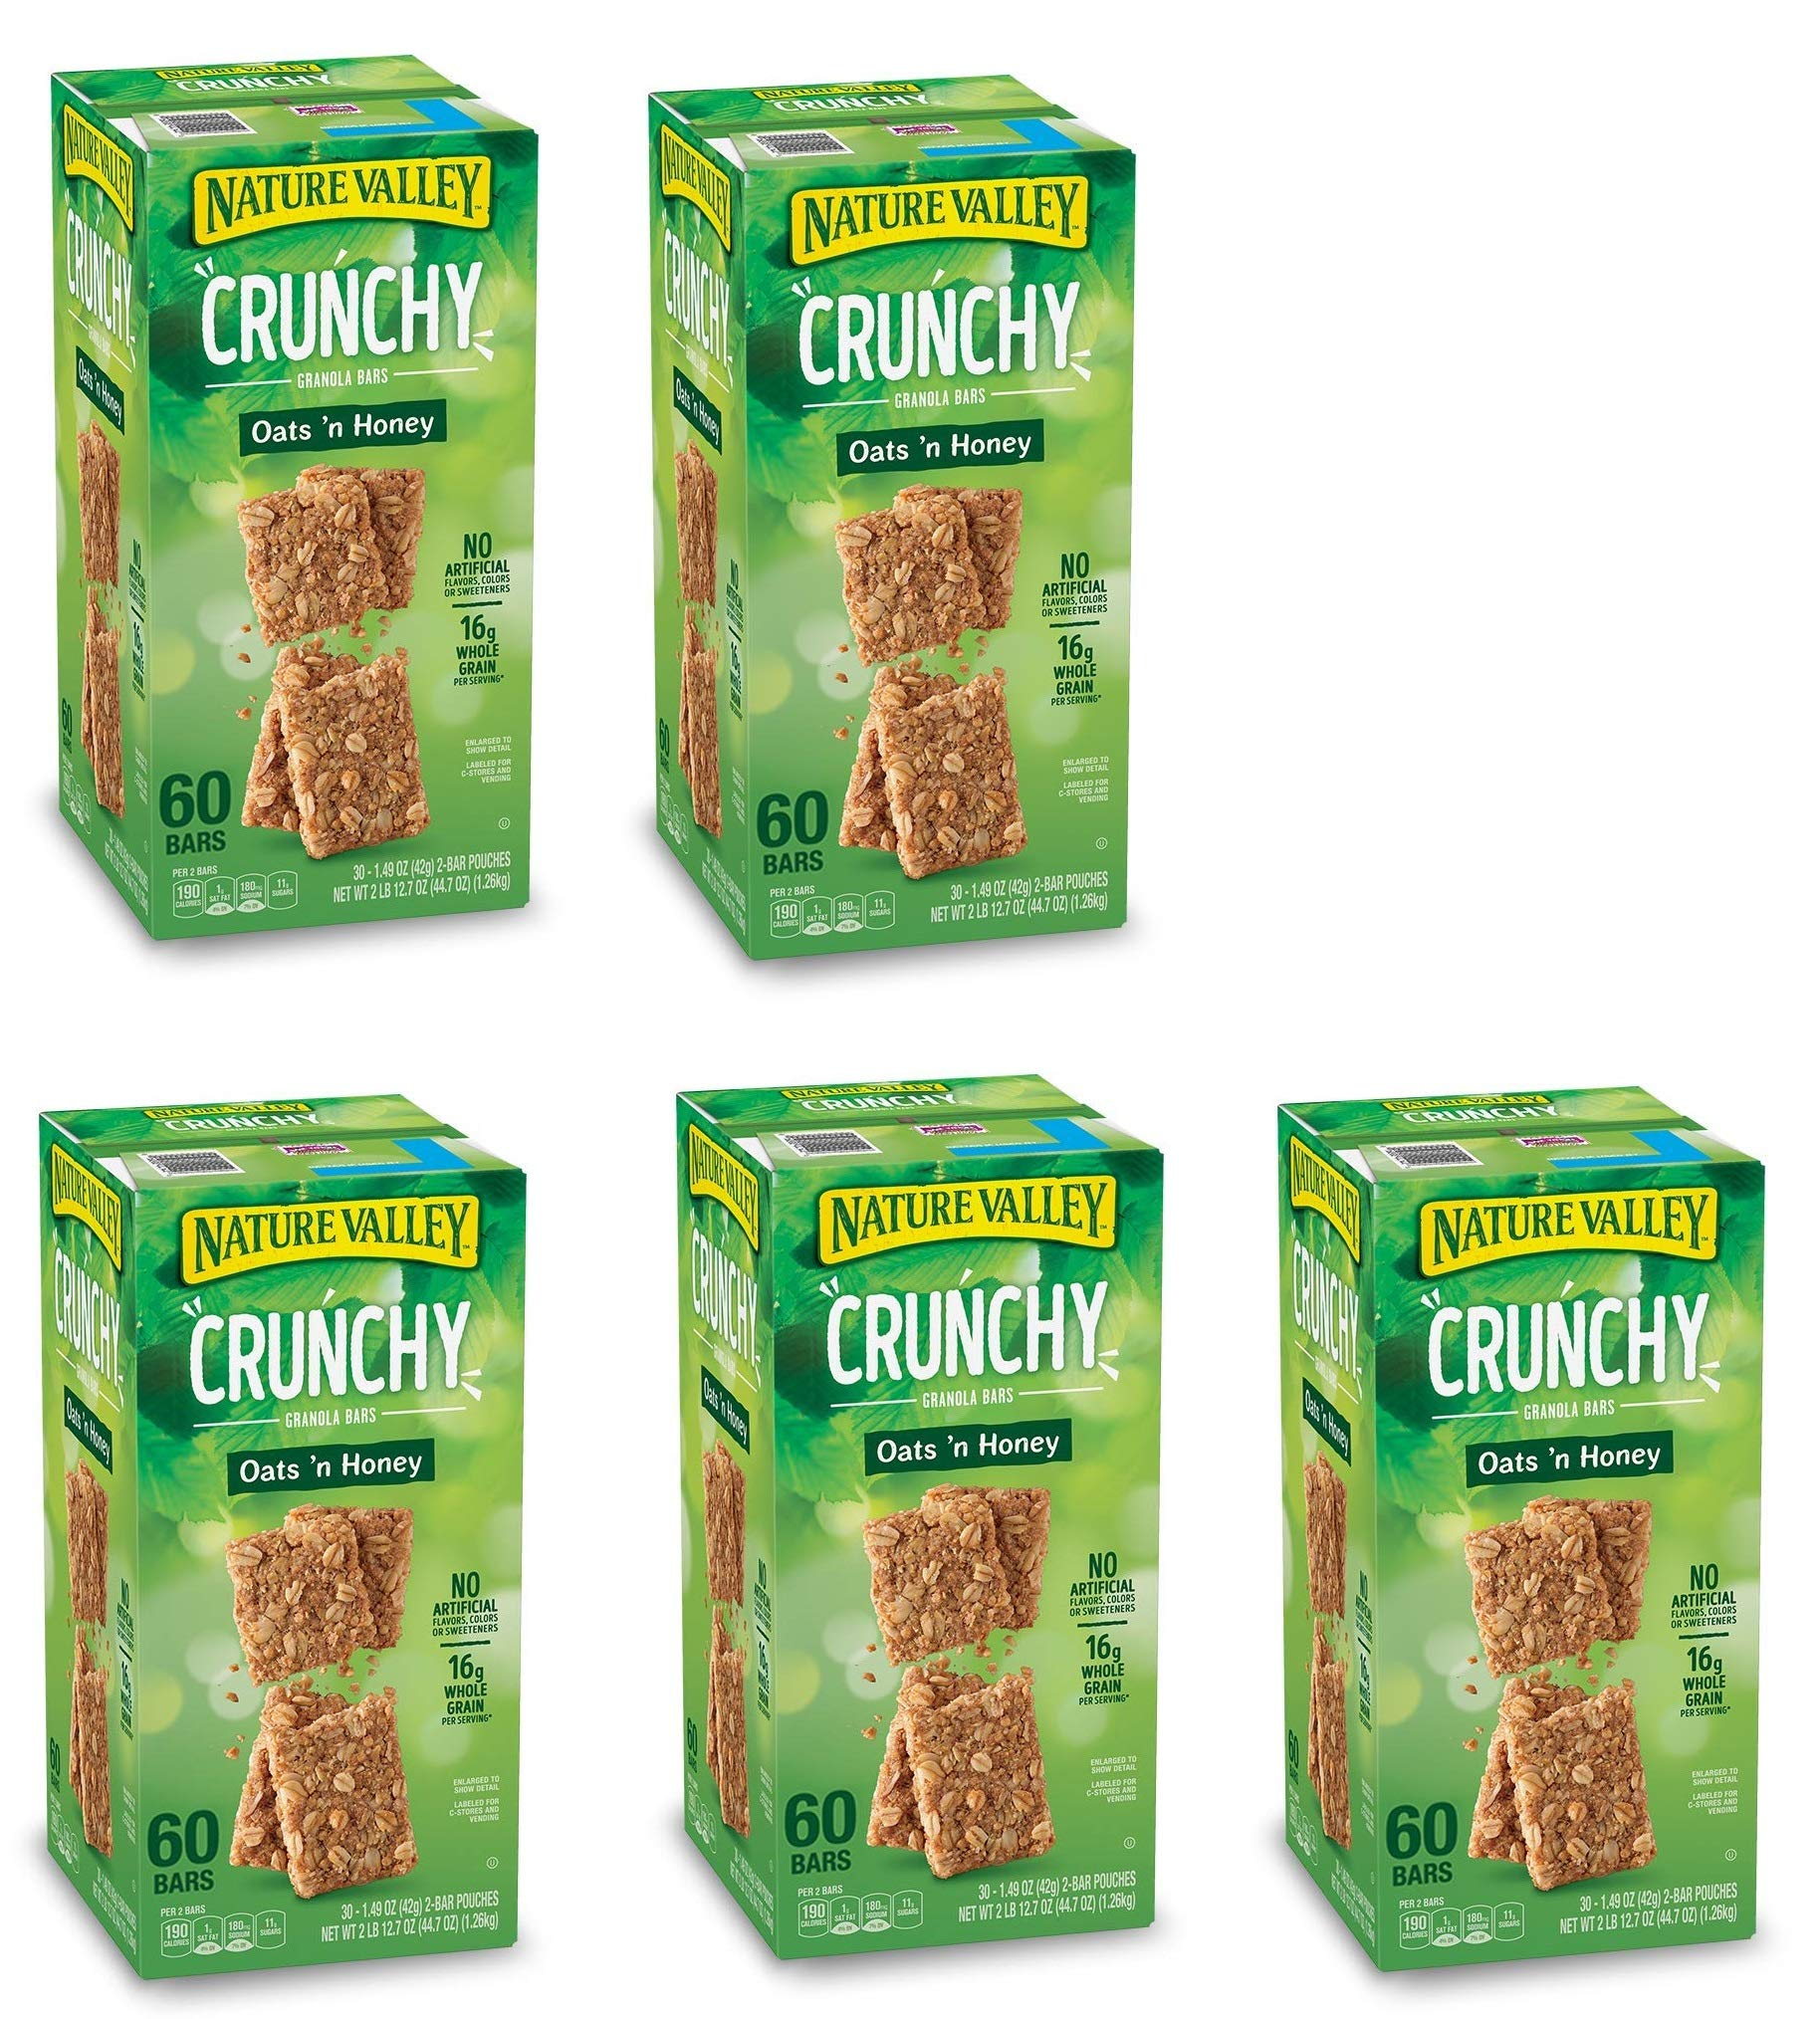 Natures Valley granola bars, Crunchy Oats N Honey, 60 Bars (5 Boxes) by Nature Valley